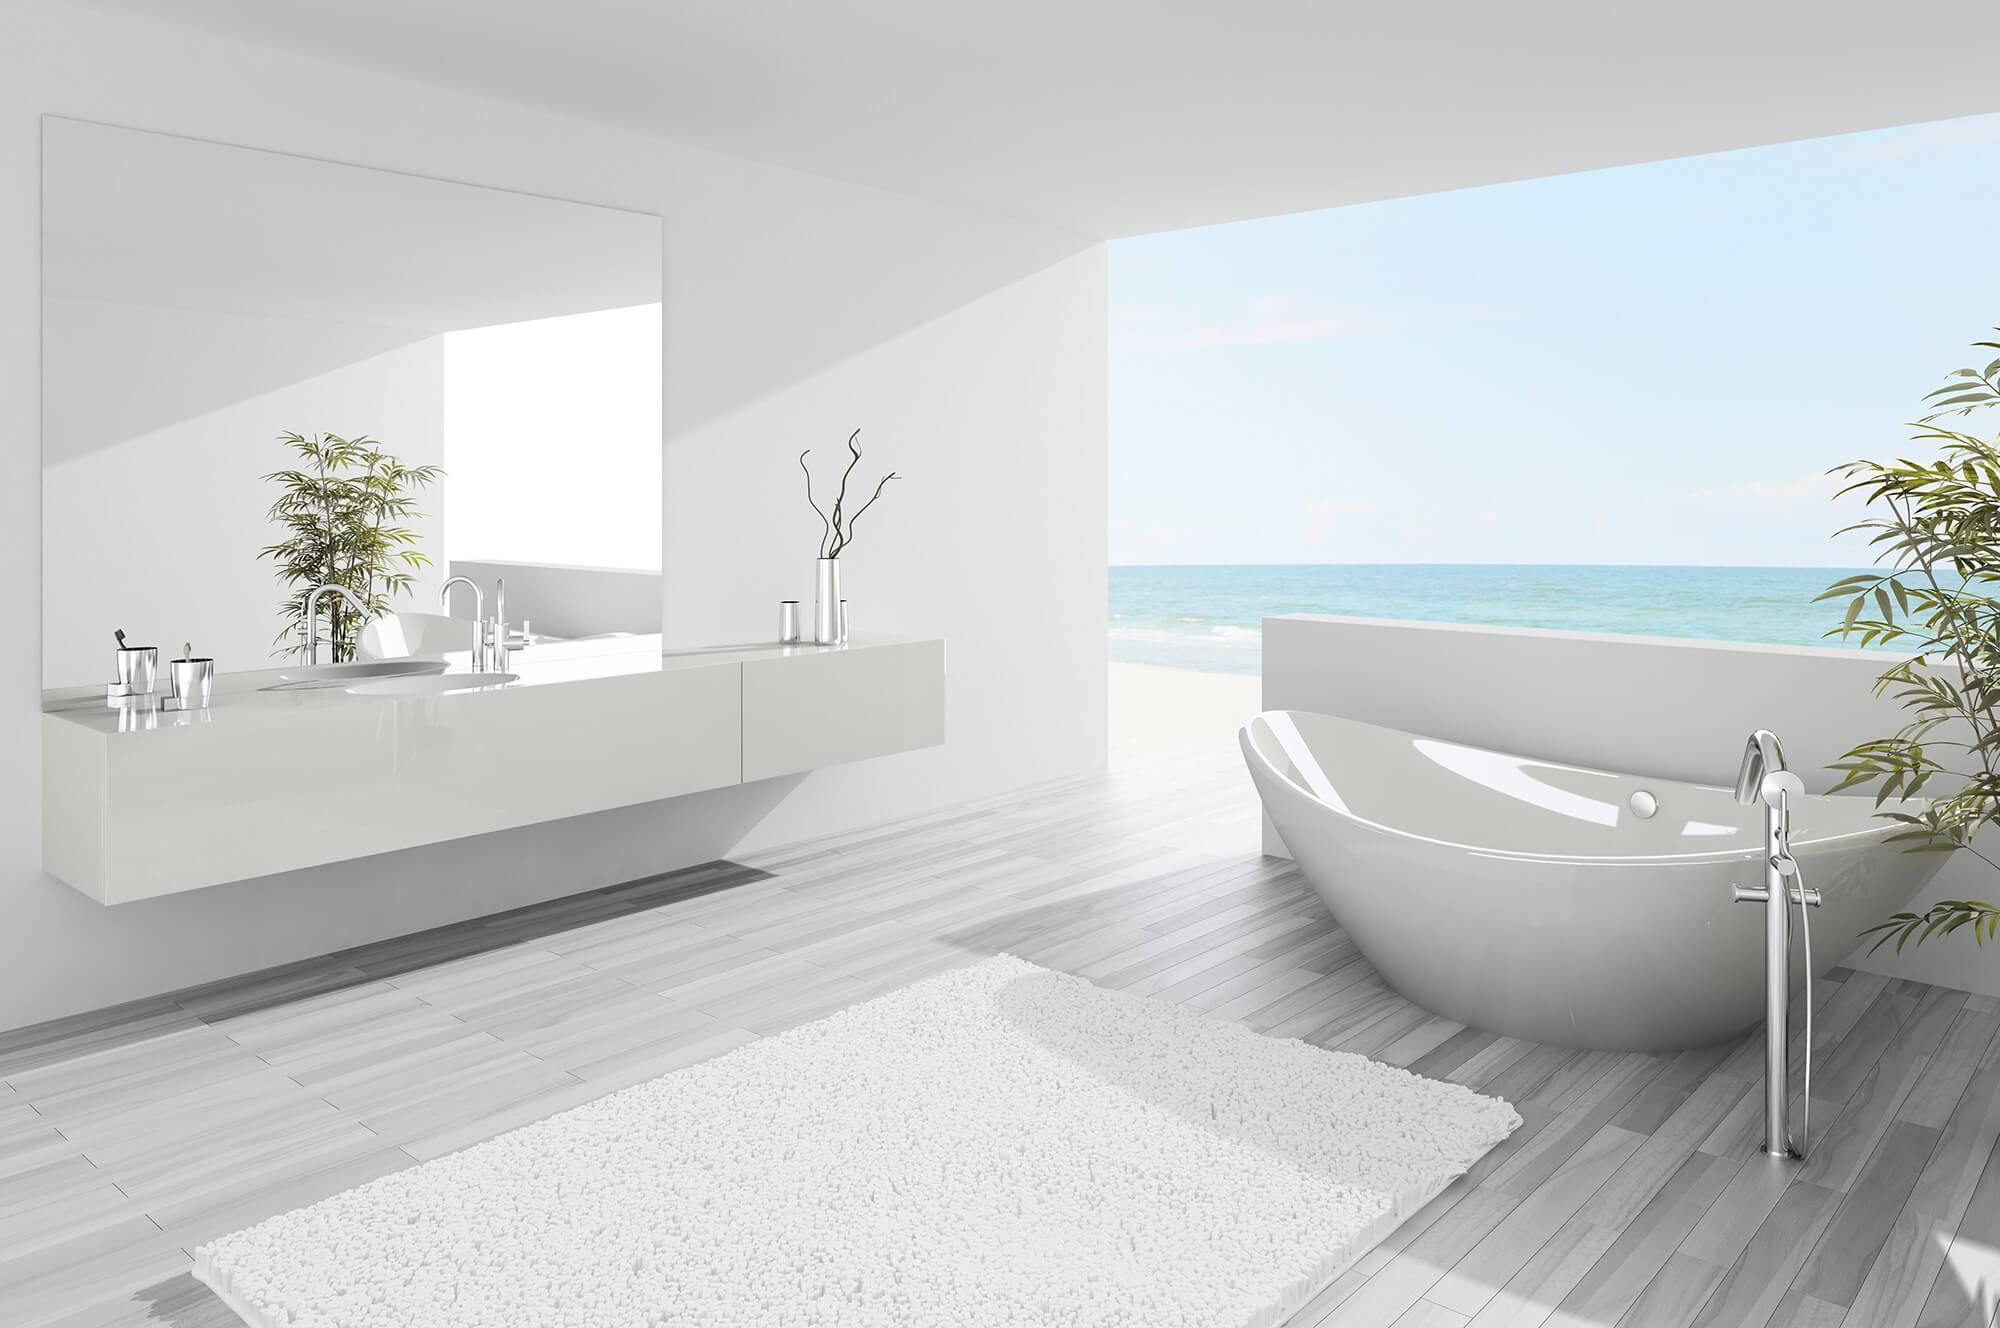 What You Need to Know About Renovating a Luxury Bathroom